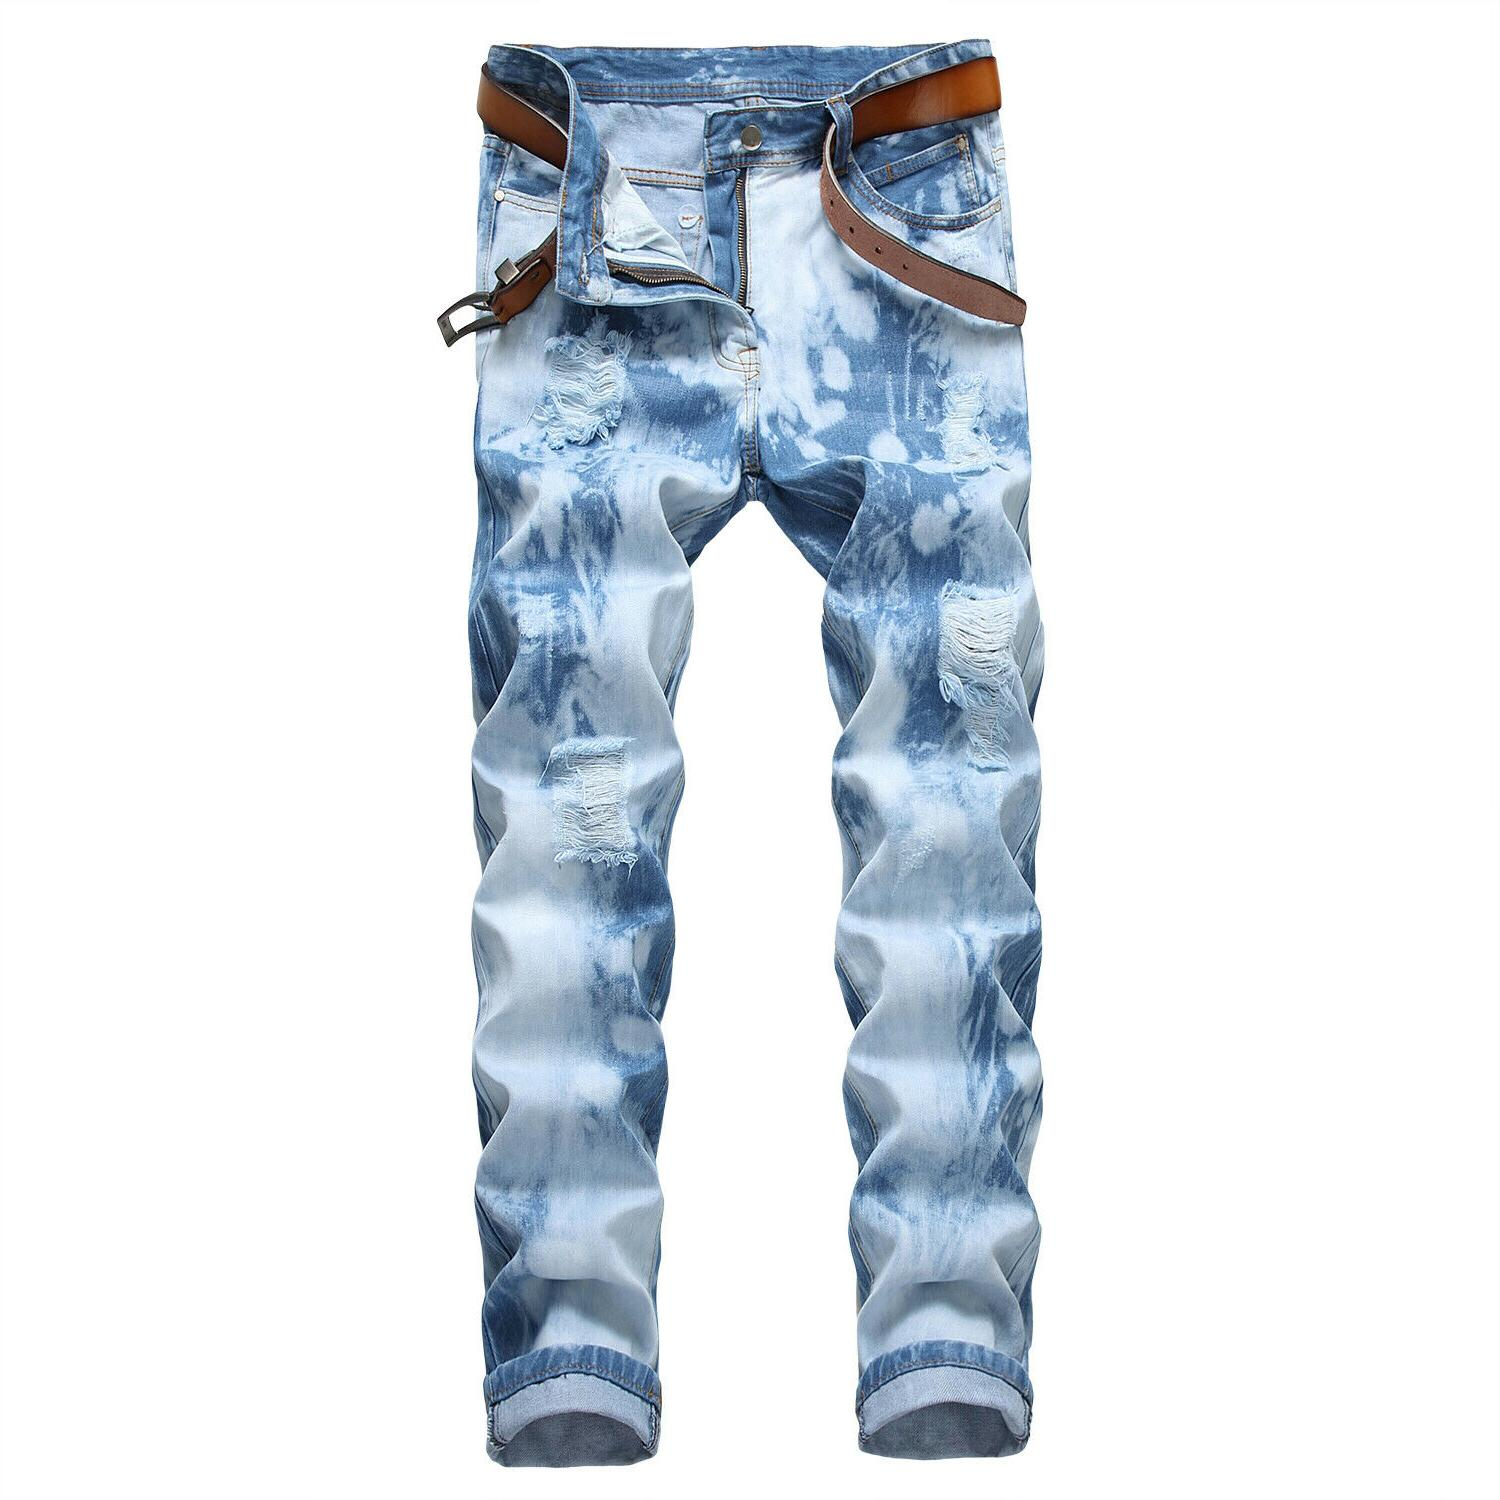 Men's Biker Jeans Frayed Slim Pants